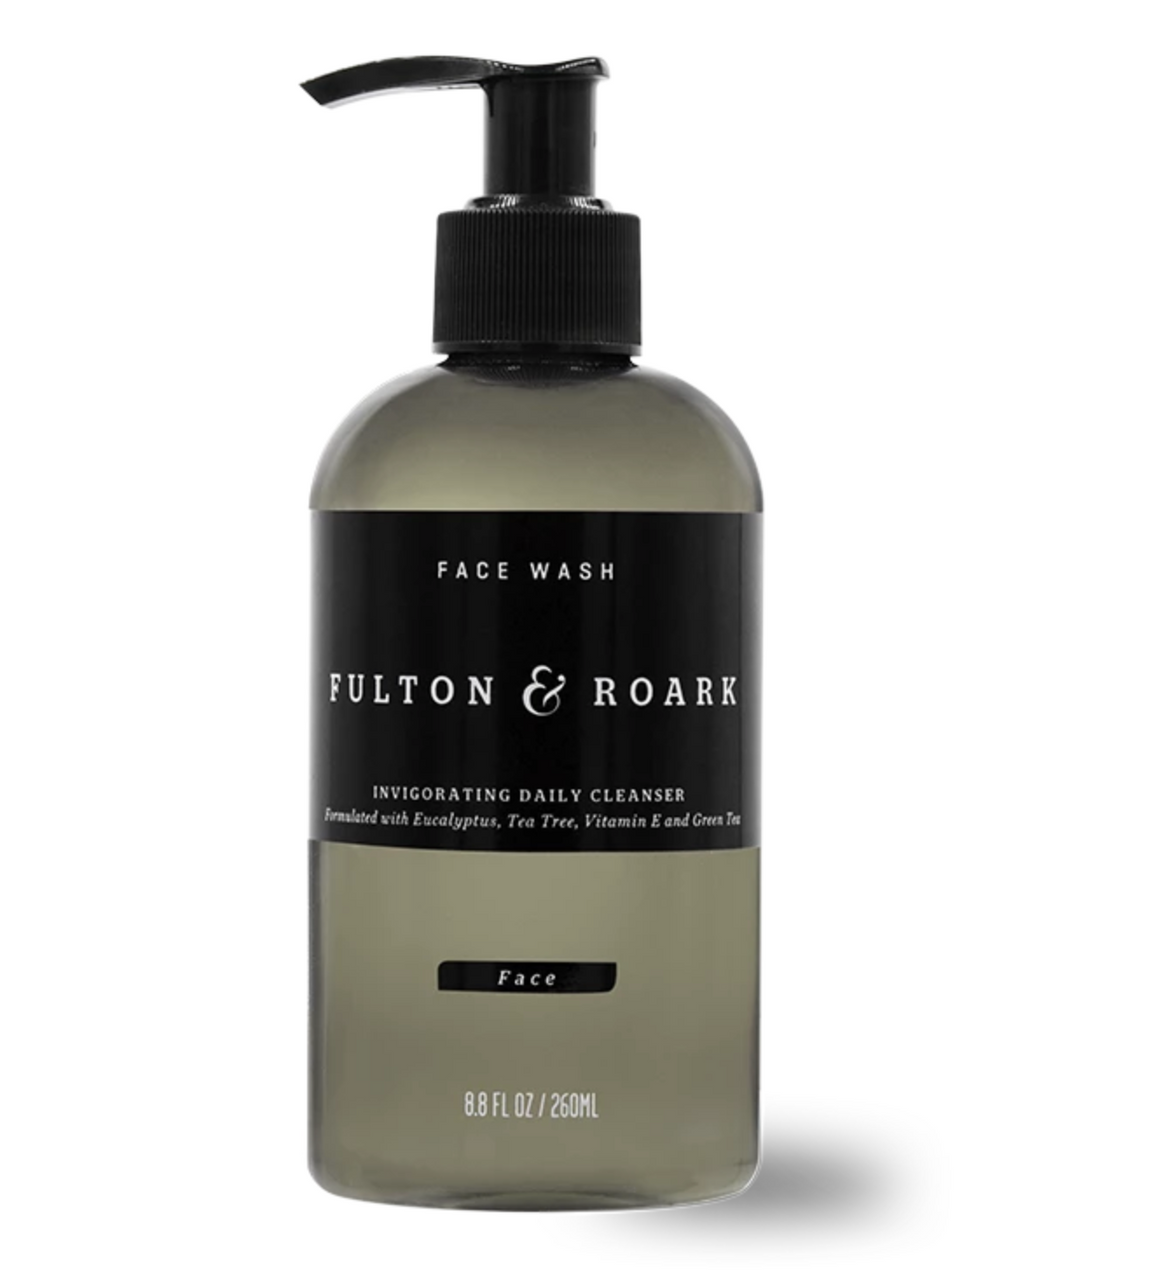 Fulton & Roark Face Wash  - 8.8 fl oz/ 260 ml